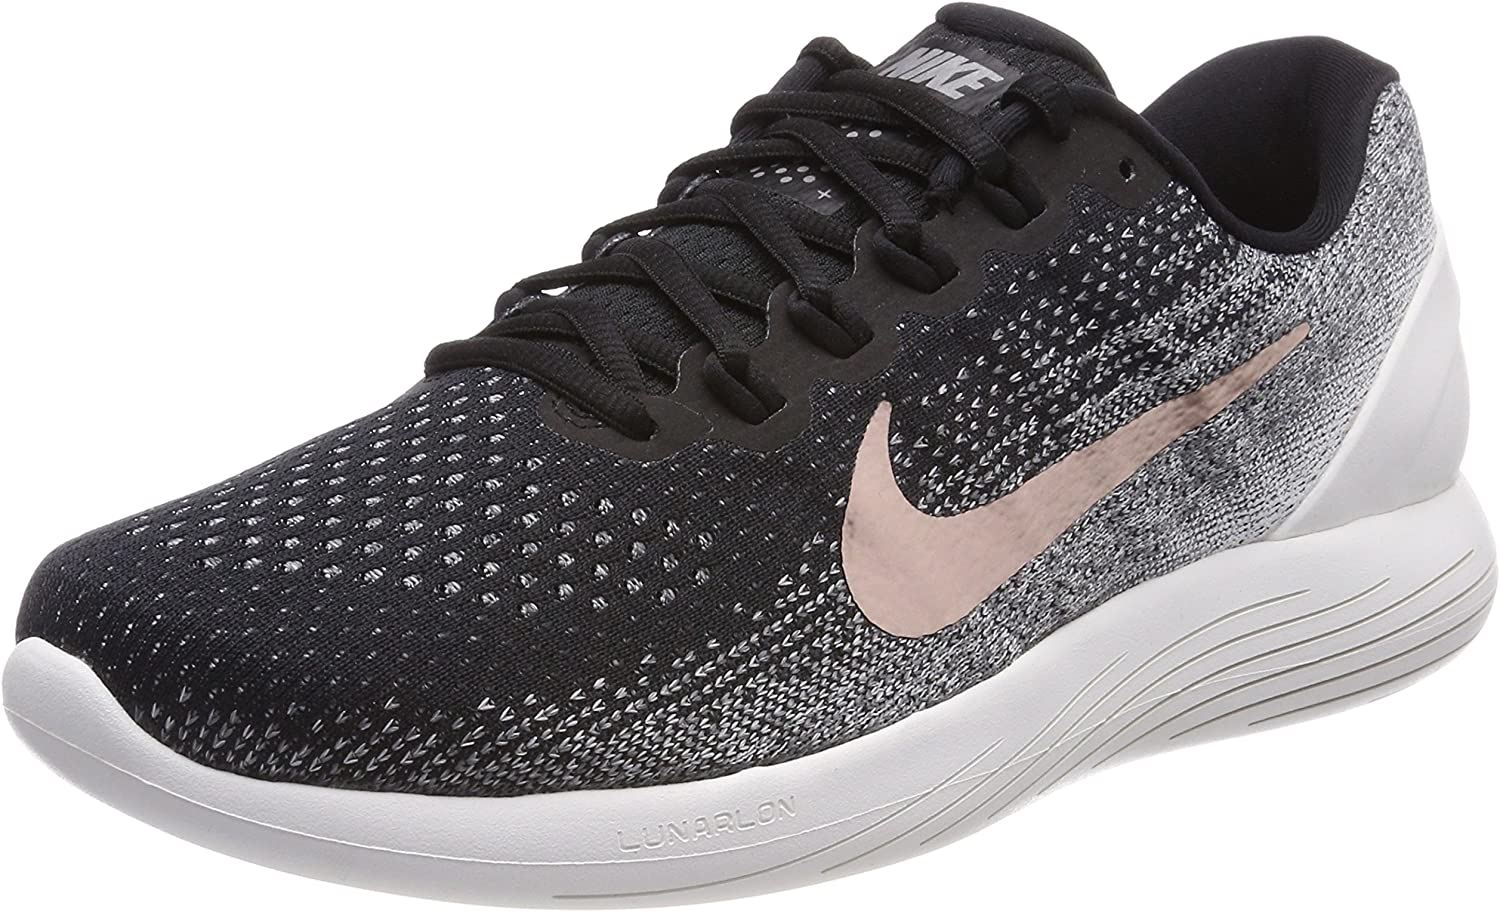 Usual Forzado compañero  Nike Men's Lunarglide 9 X-plore Competition Running Shoes: Amazon.co.uk:  Shoes & Bags